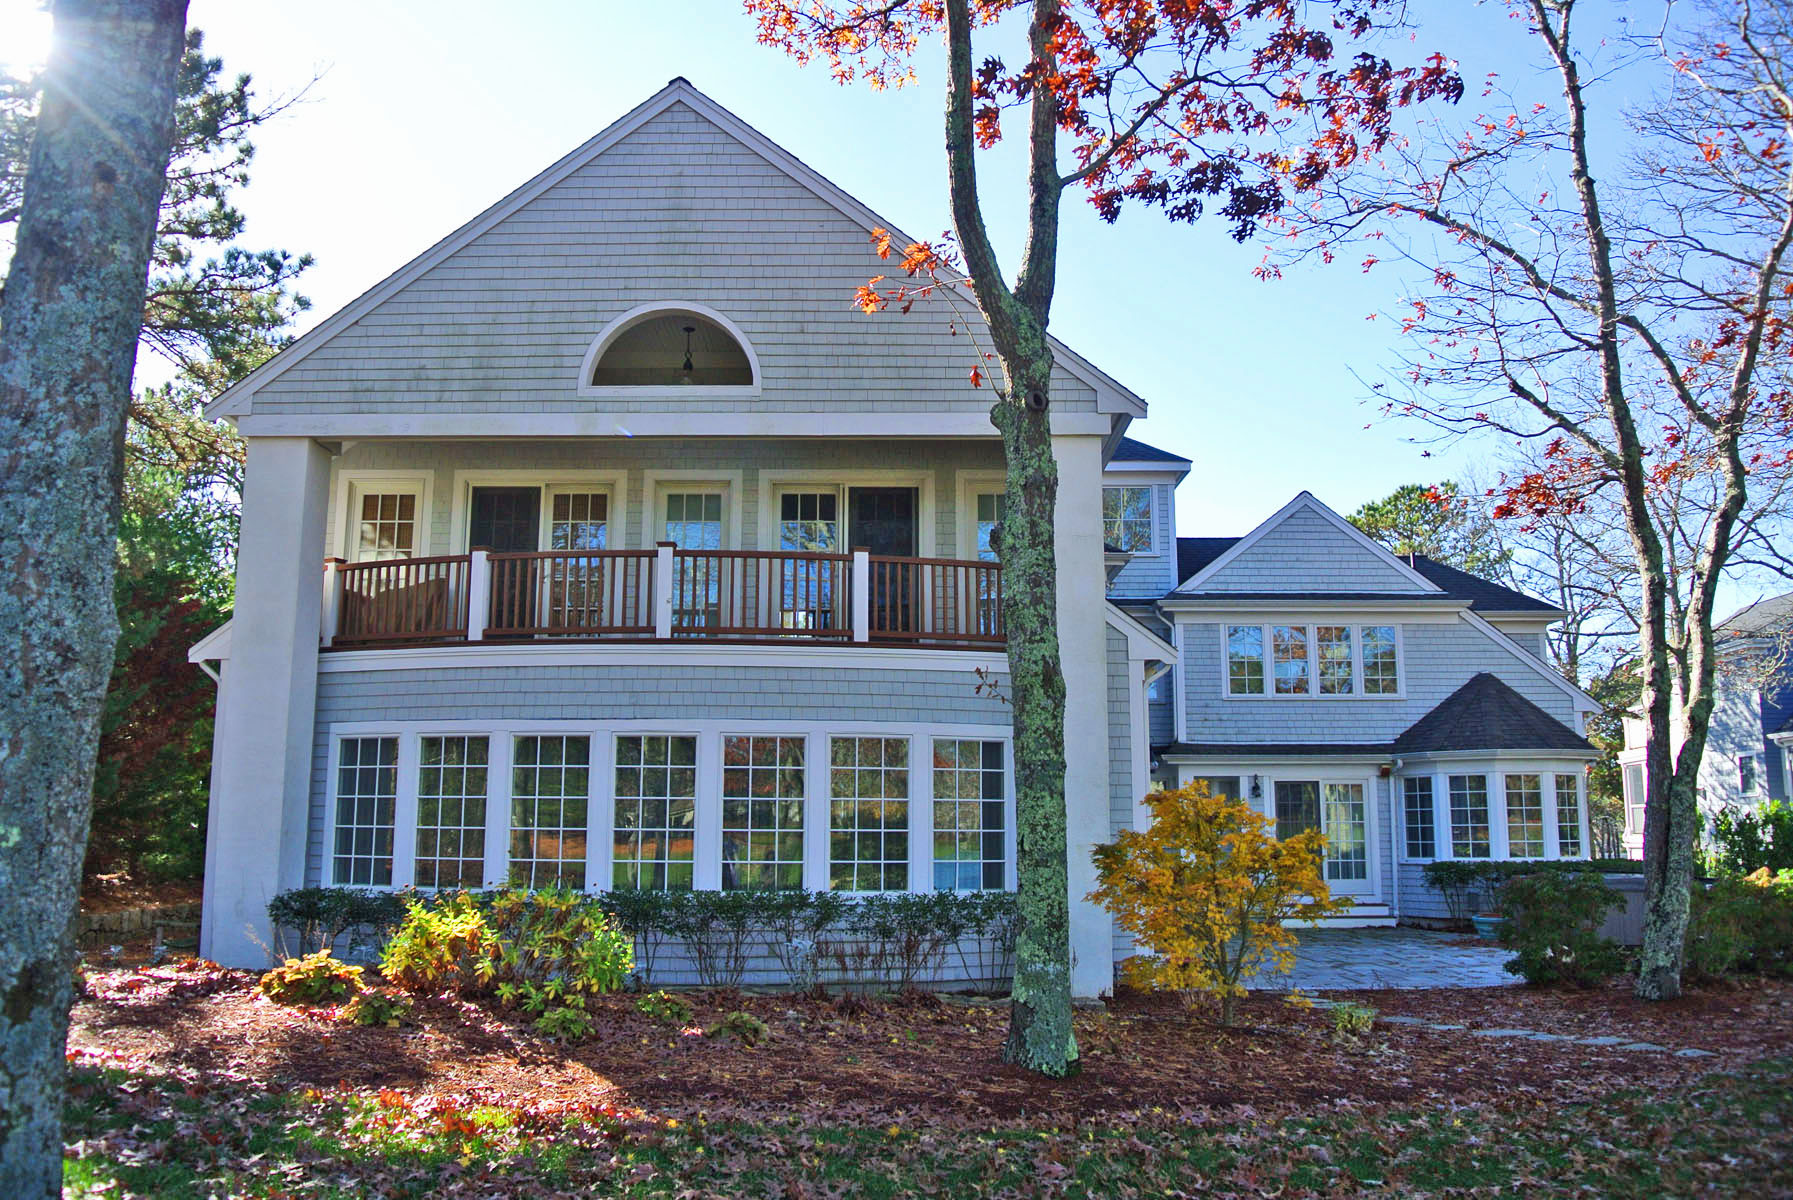 Single Family Home for Sale at EXQUISITE GOLF FRONT 236 Glenneagle Drive New Seabury, Massachusetts 02649 United StatesIn/Around: New Seabury